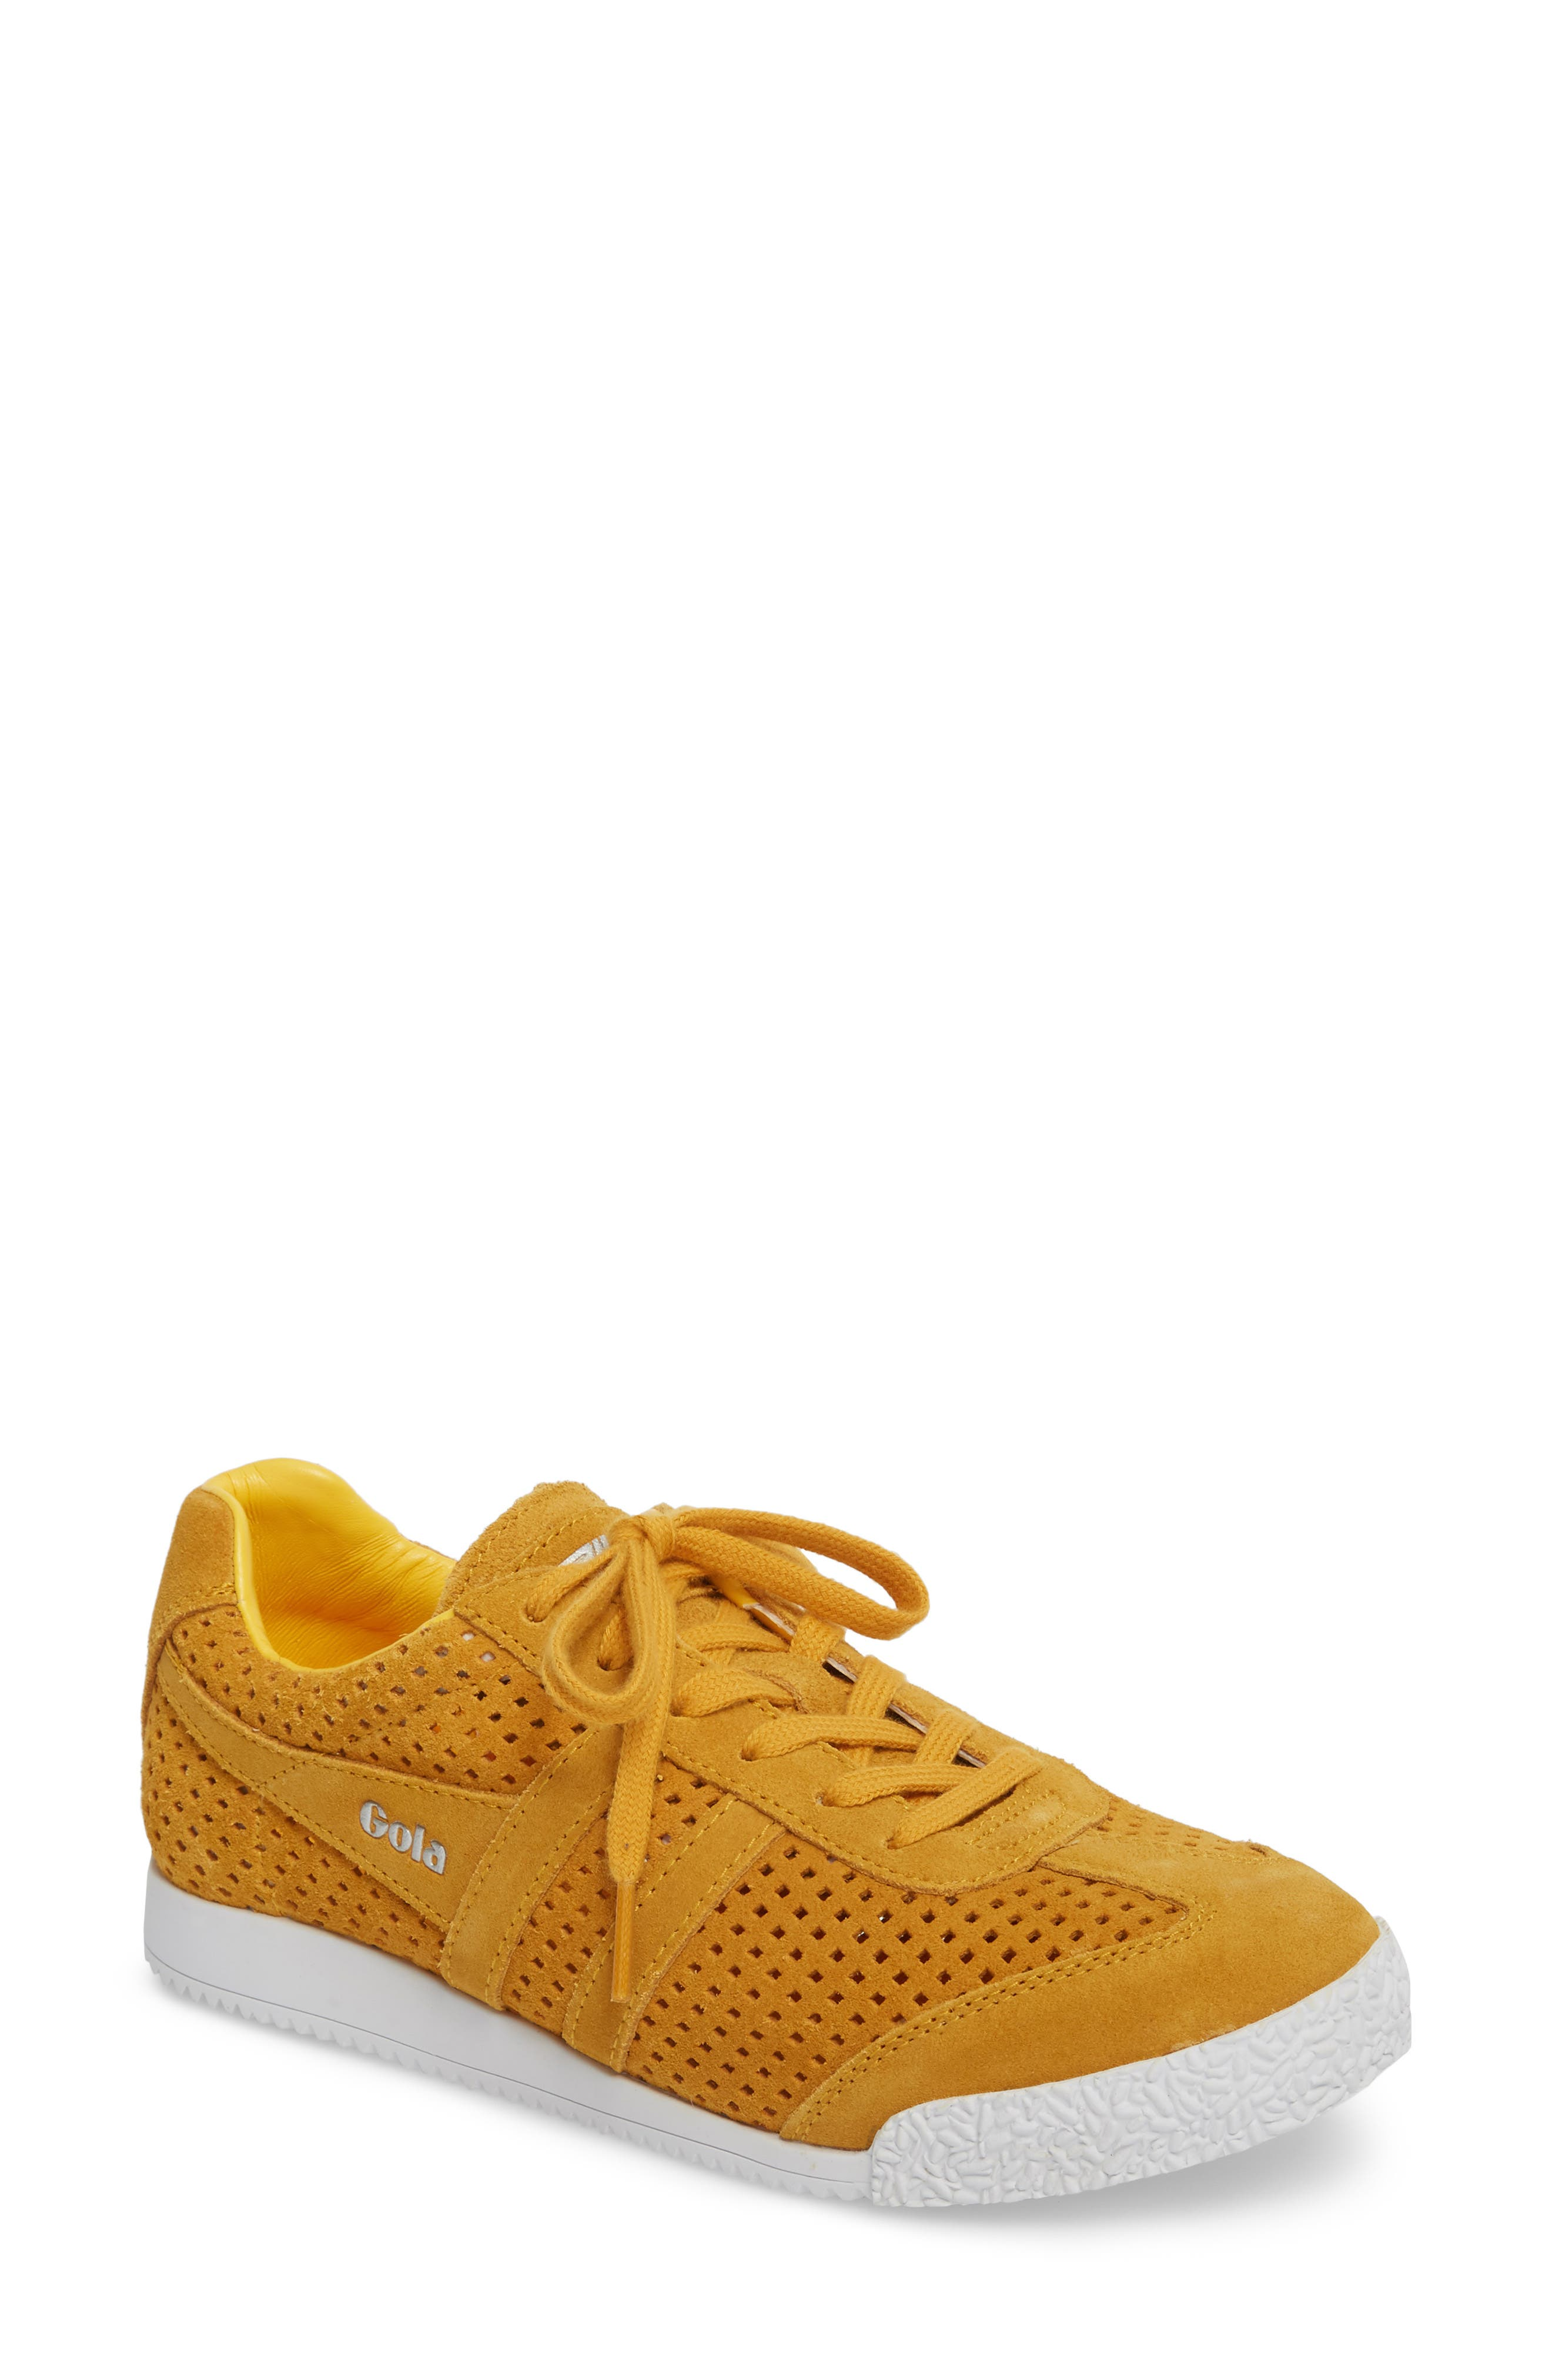 Harrier Squared Low Top Sneaker,                             Main thumbnail 1, color,                             700